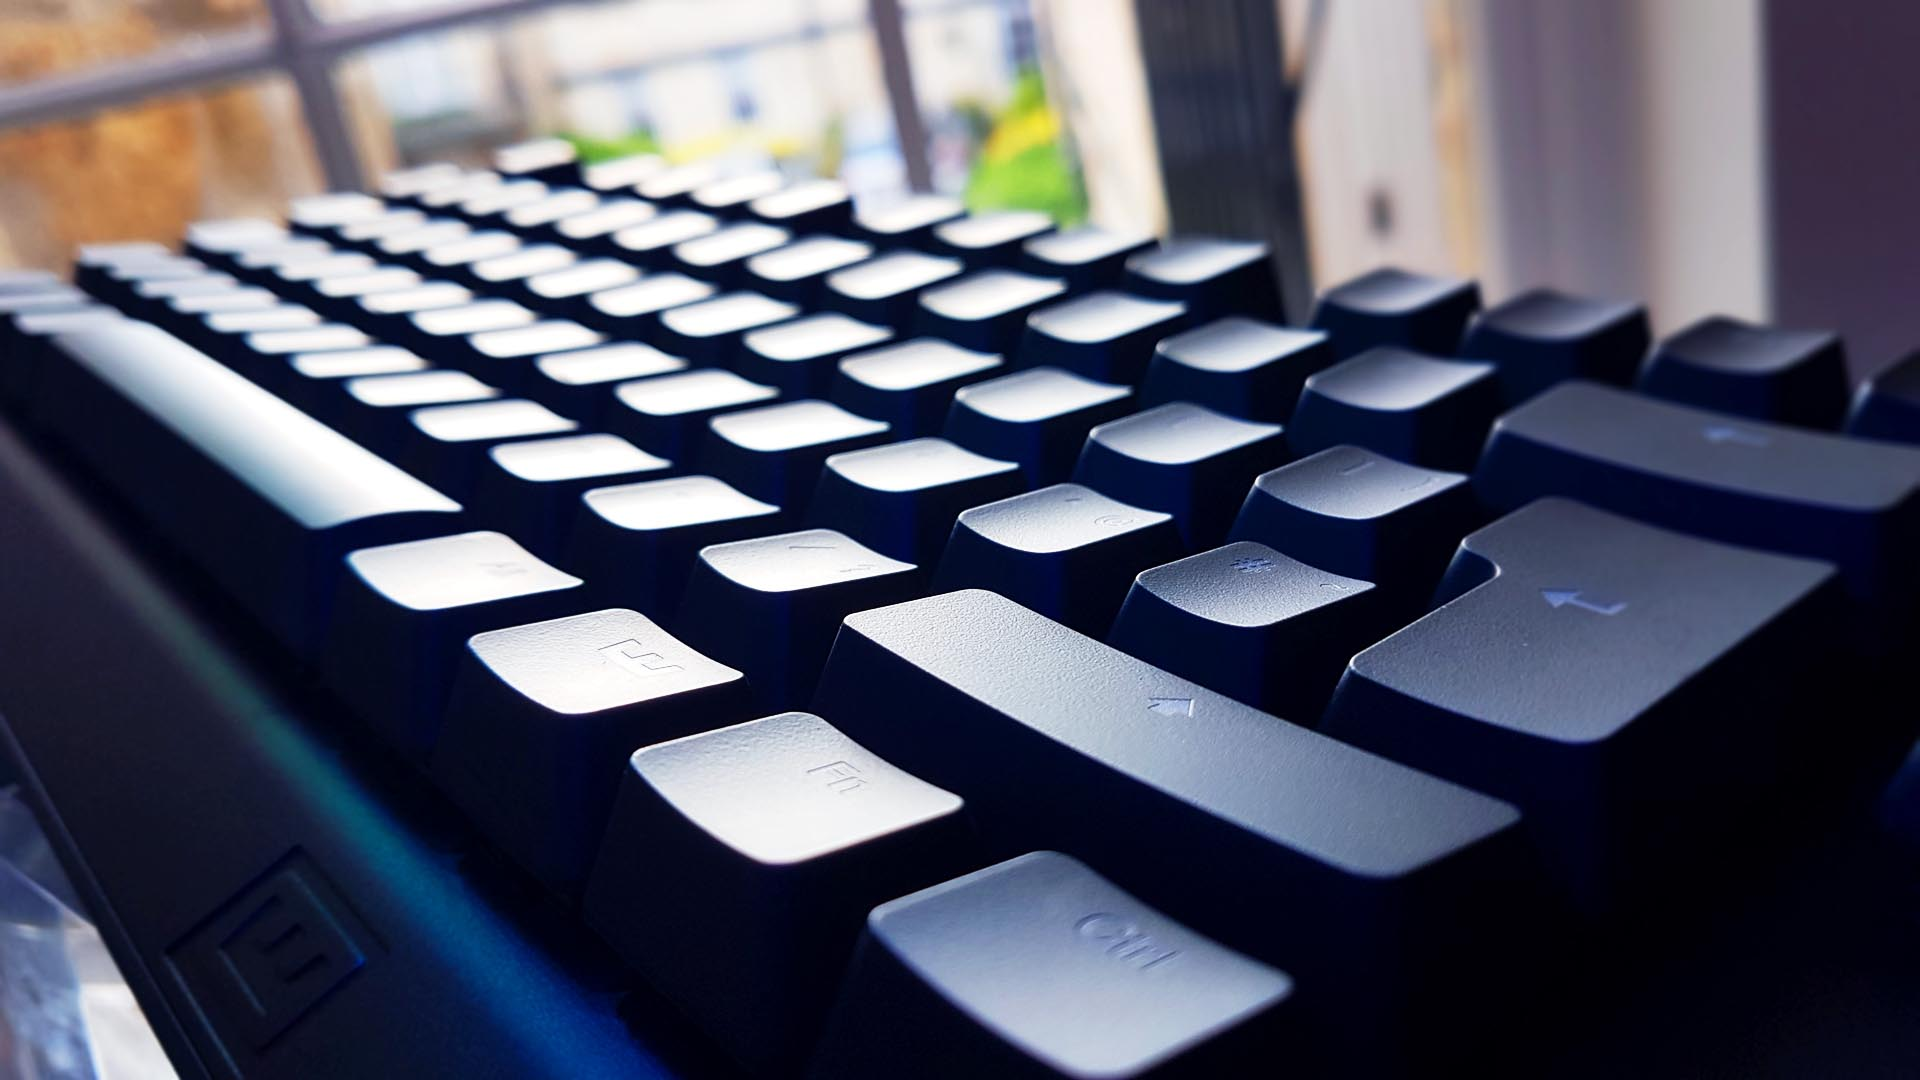 Best Gaming Keyboards 2020.What Is The Best Gaming Keyboard In 2019 The Keys To Gaming